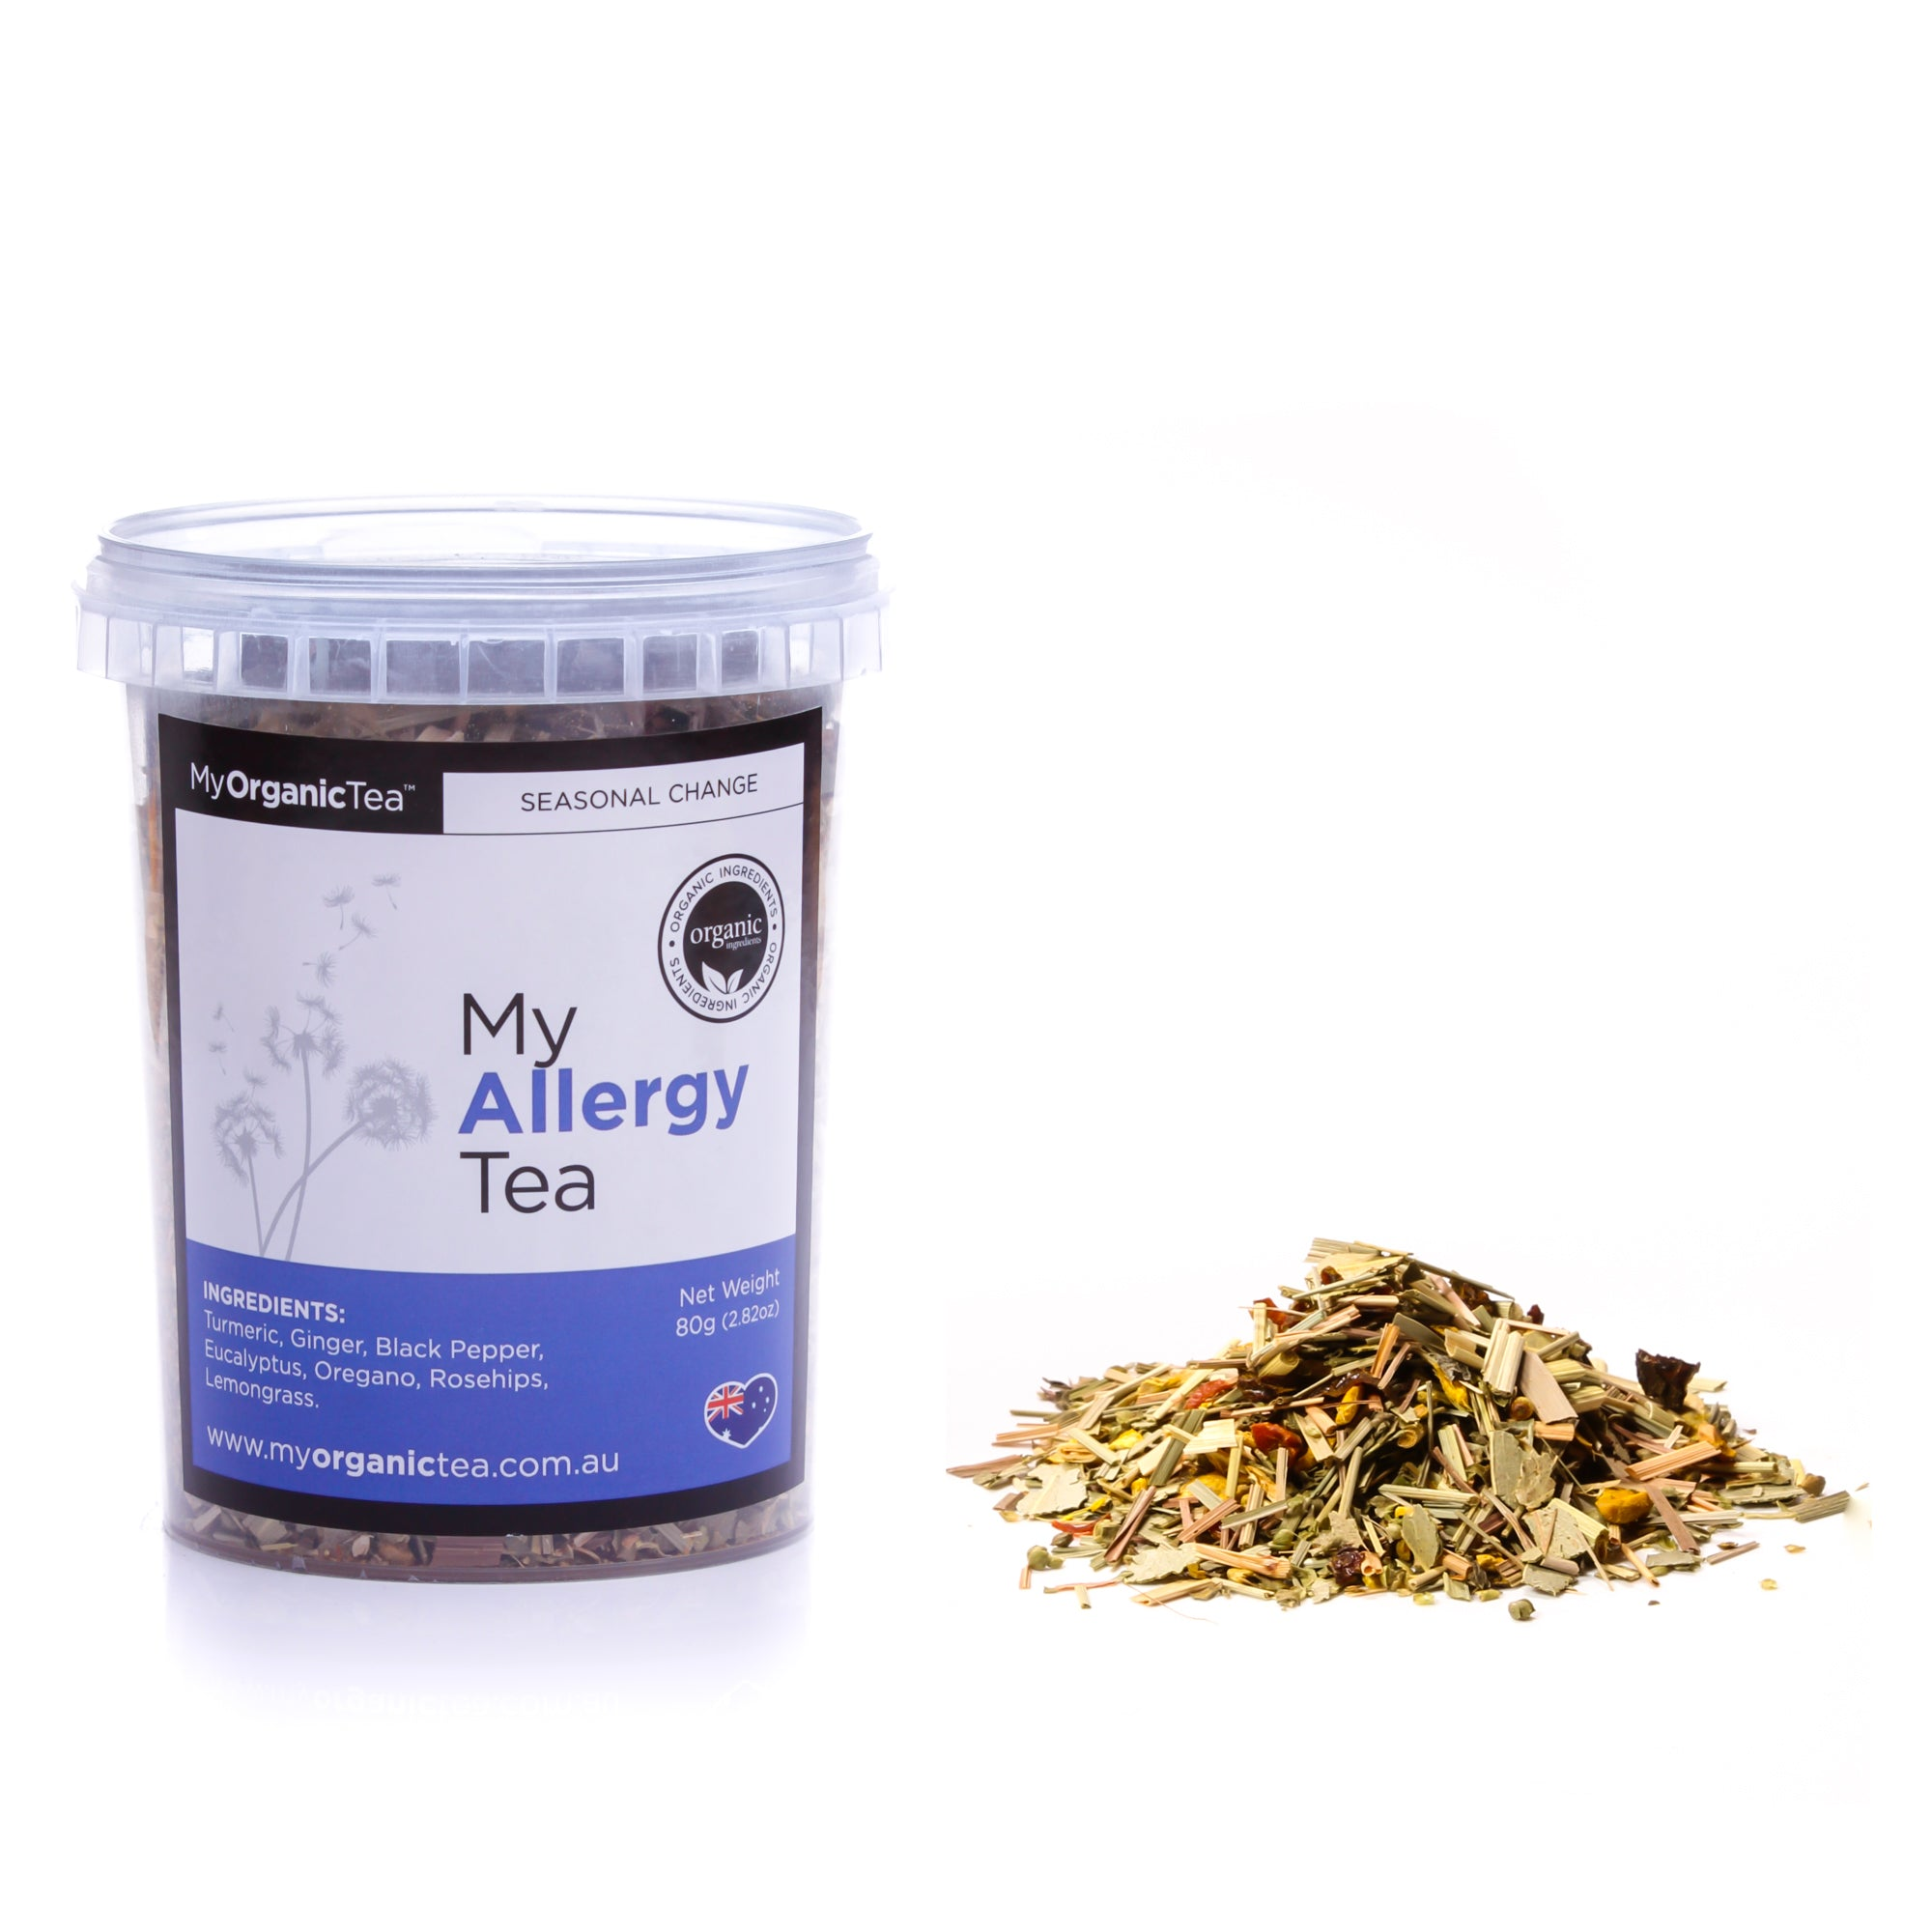 My Allergy Tea 60 Grams (30 Serves) - OrganiTea Australia